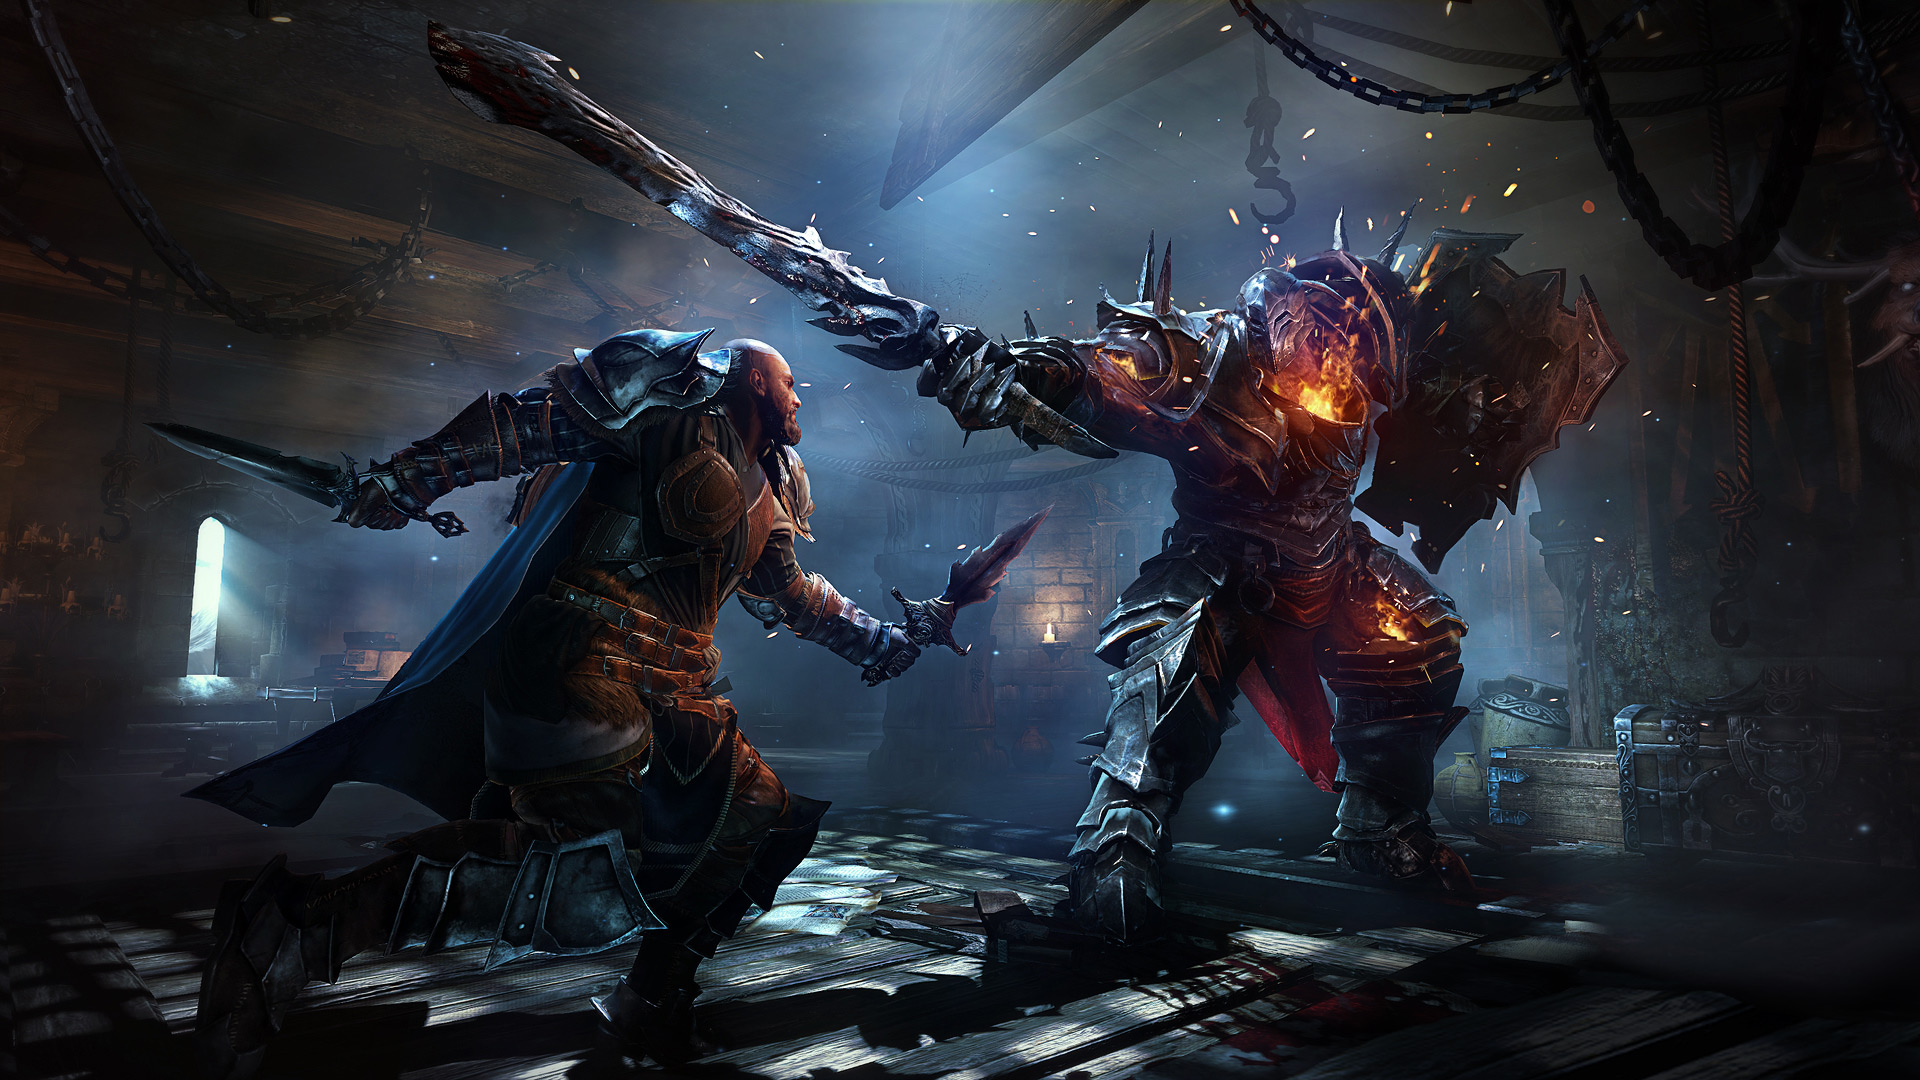 Lords Of The Fallen ESPAÑOL PC Full (CPY) + REPACK 3 DVD5 (JPW) 6